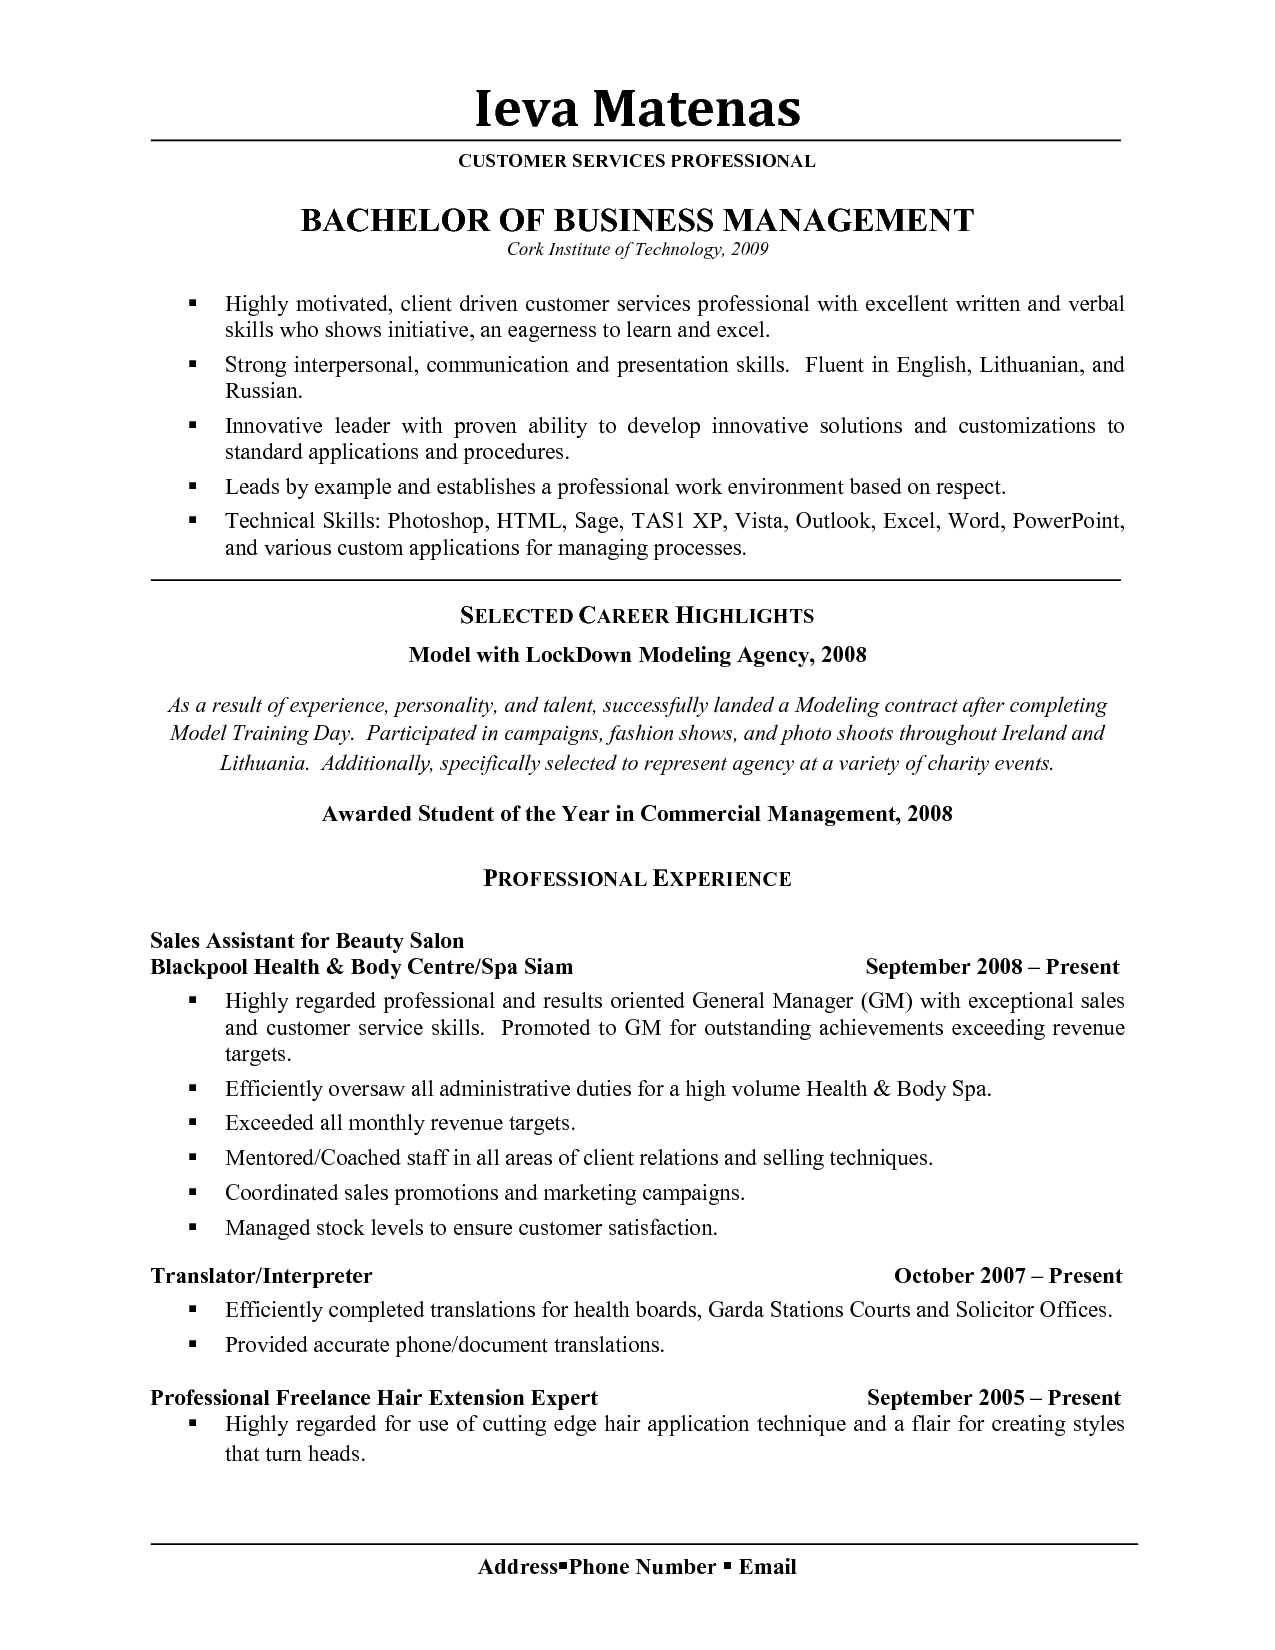 Sample Resume Summary Excellent Receptionist Resume  Document Sample  Resume Design